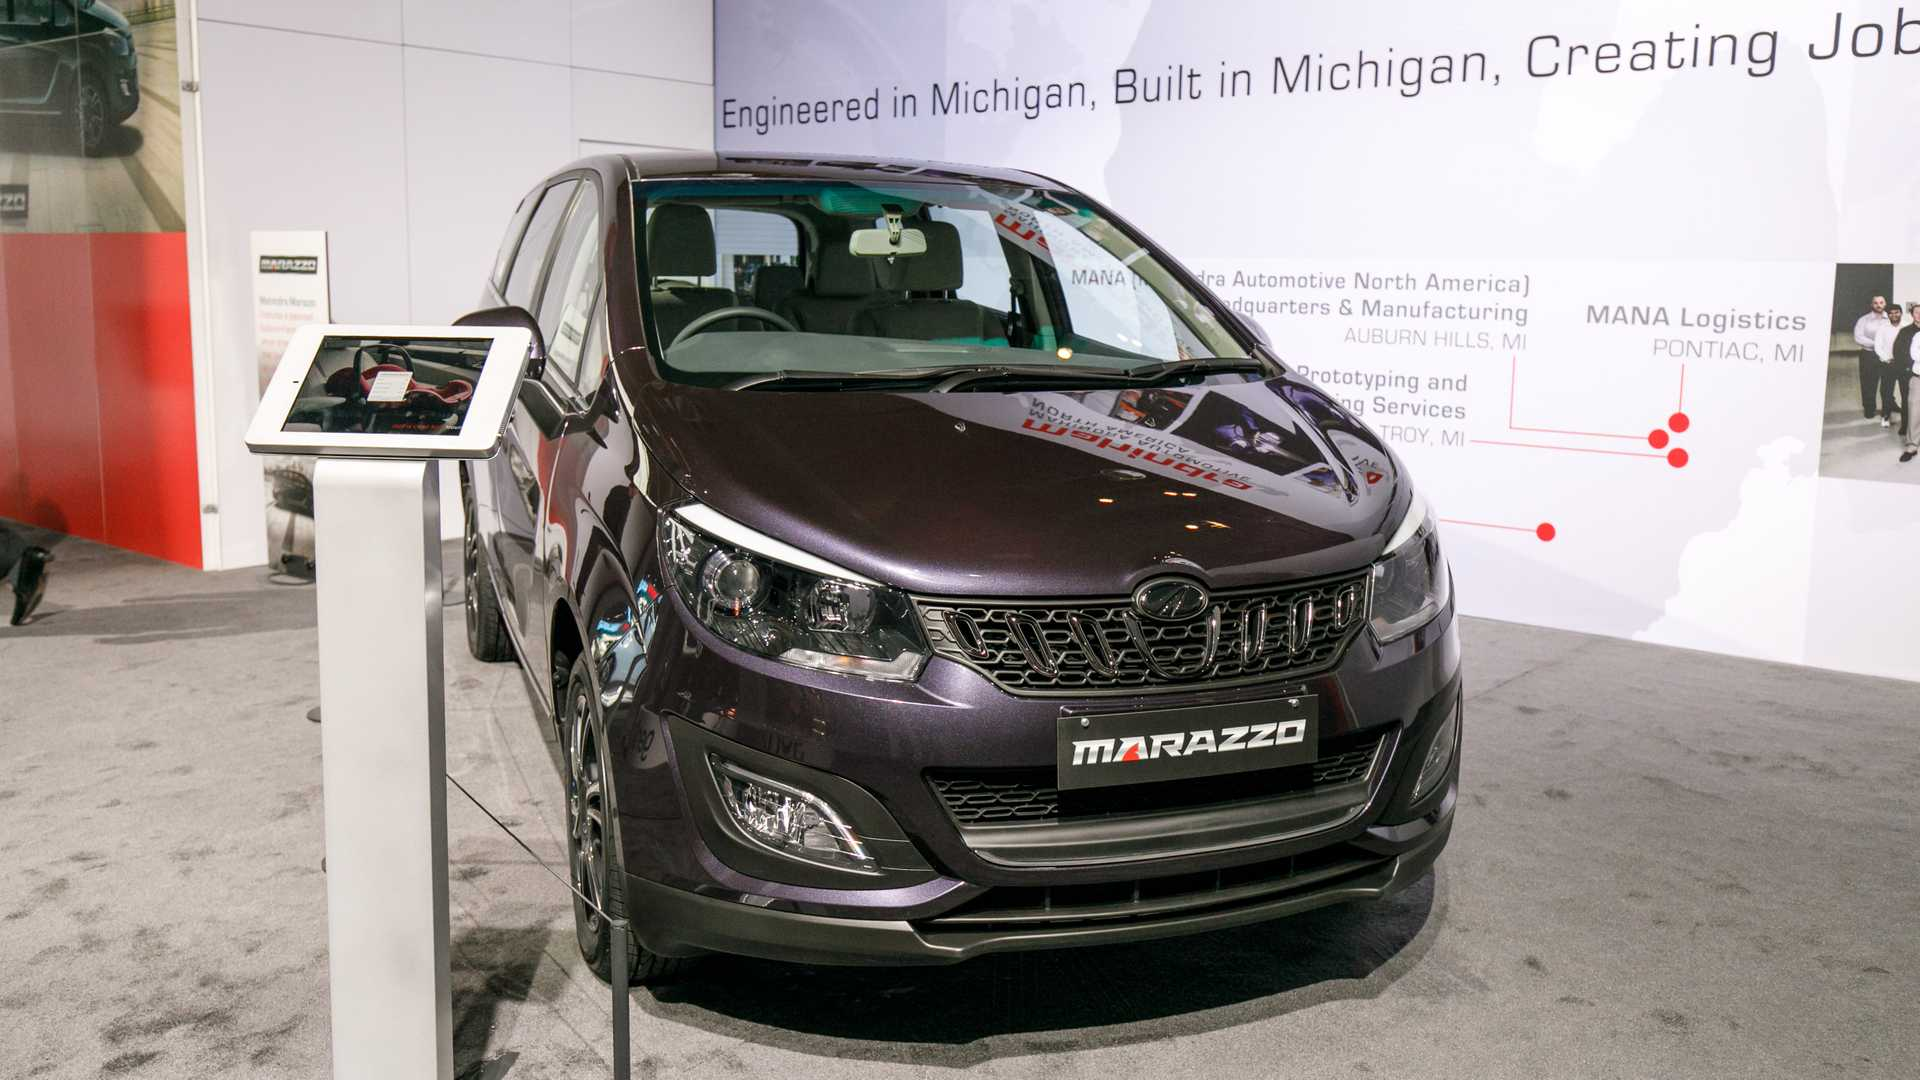 The Mahindra Marazzo Might Be The Best Car At Detroit [UPDATE]